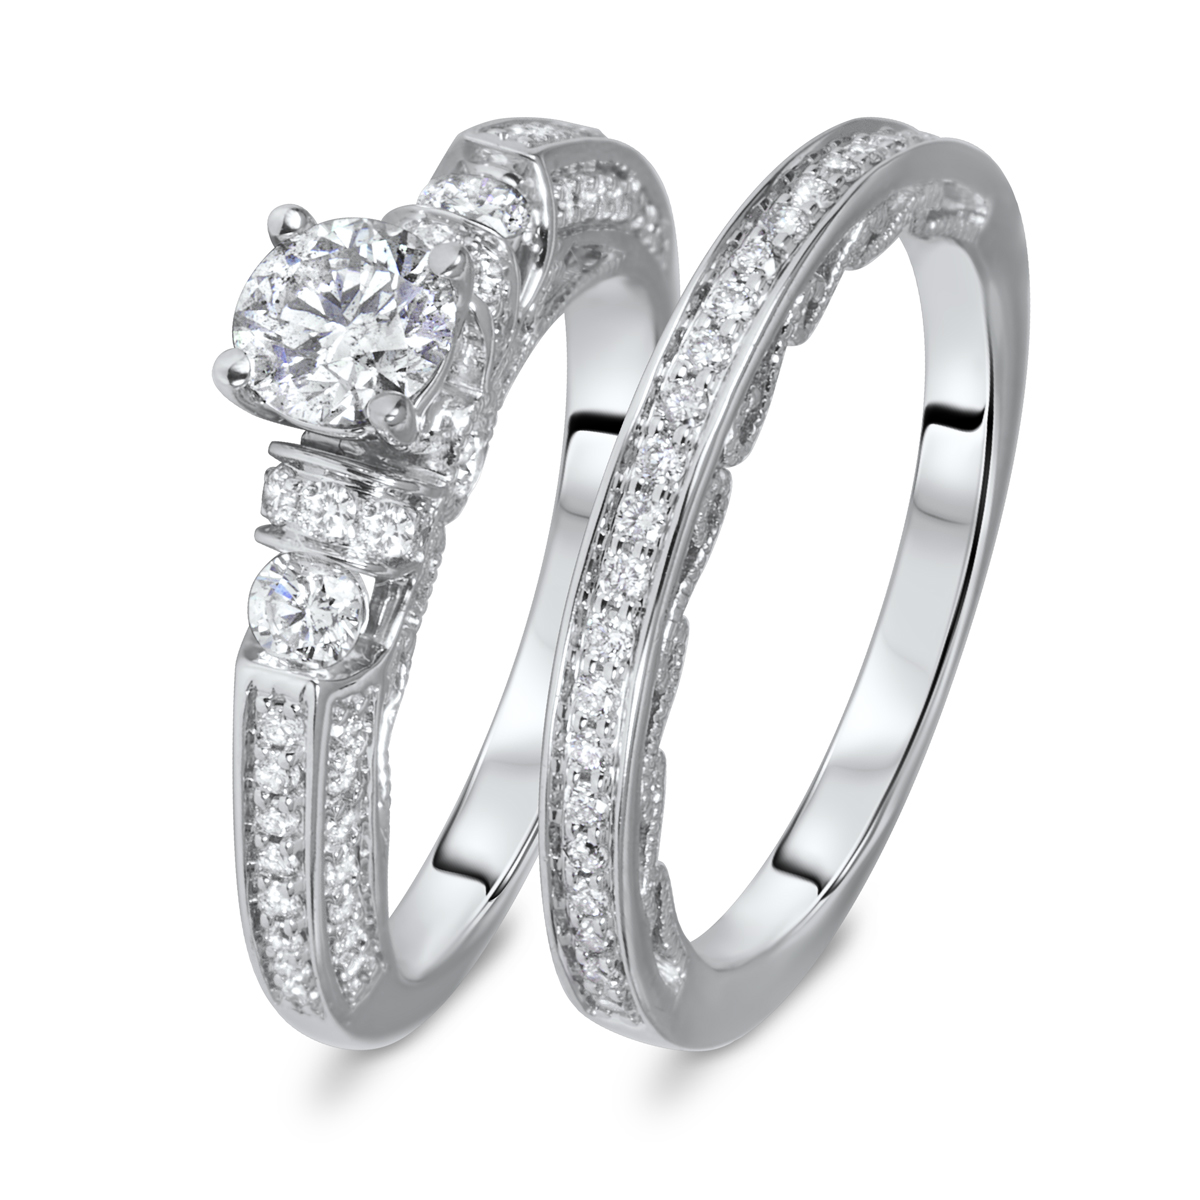 1 1/4 CT. T.W. Round Cut Diamond Ladies Bridal Wedding Ring Set 14K White Gold